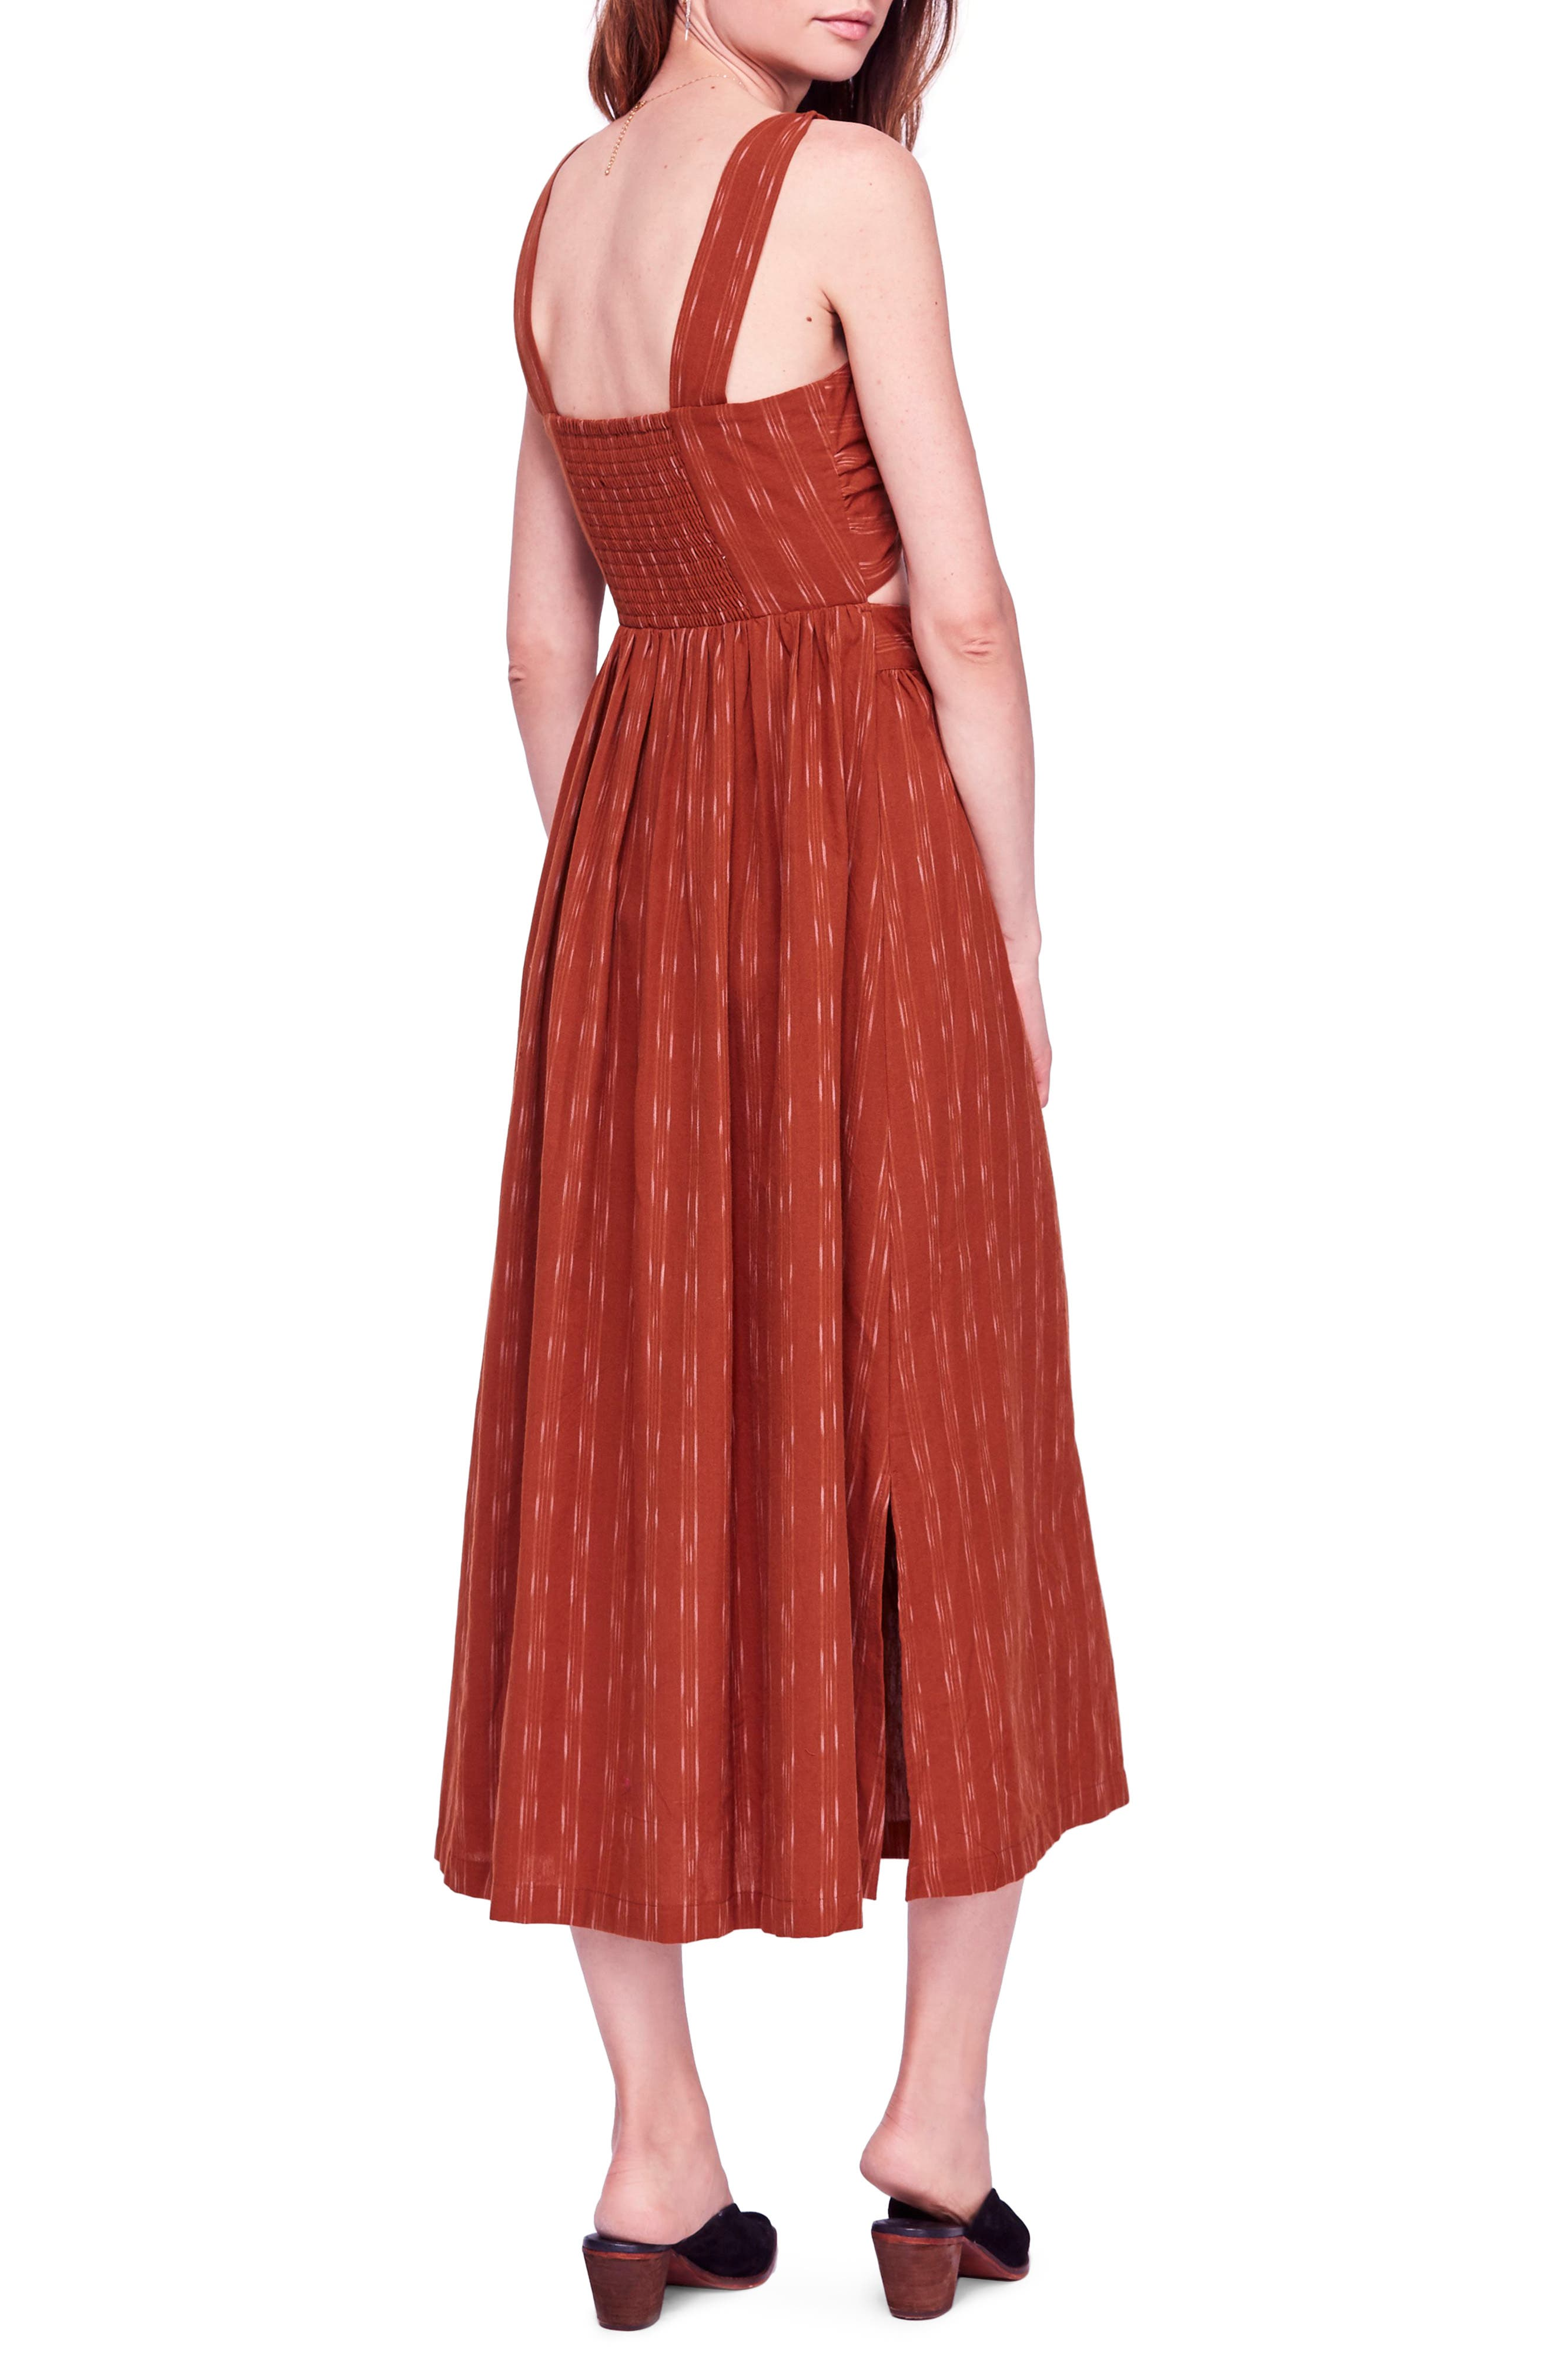 Caldasi Midi Dress,                             Alternate thumbnail 2, color,                             205